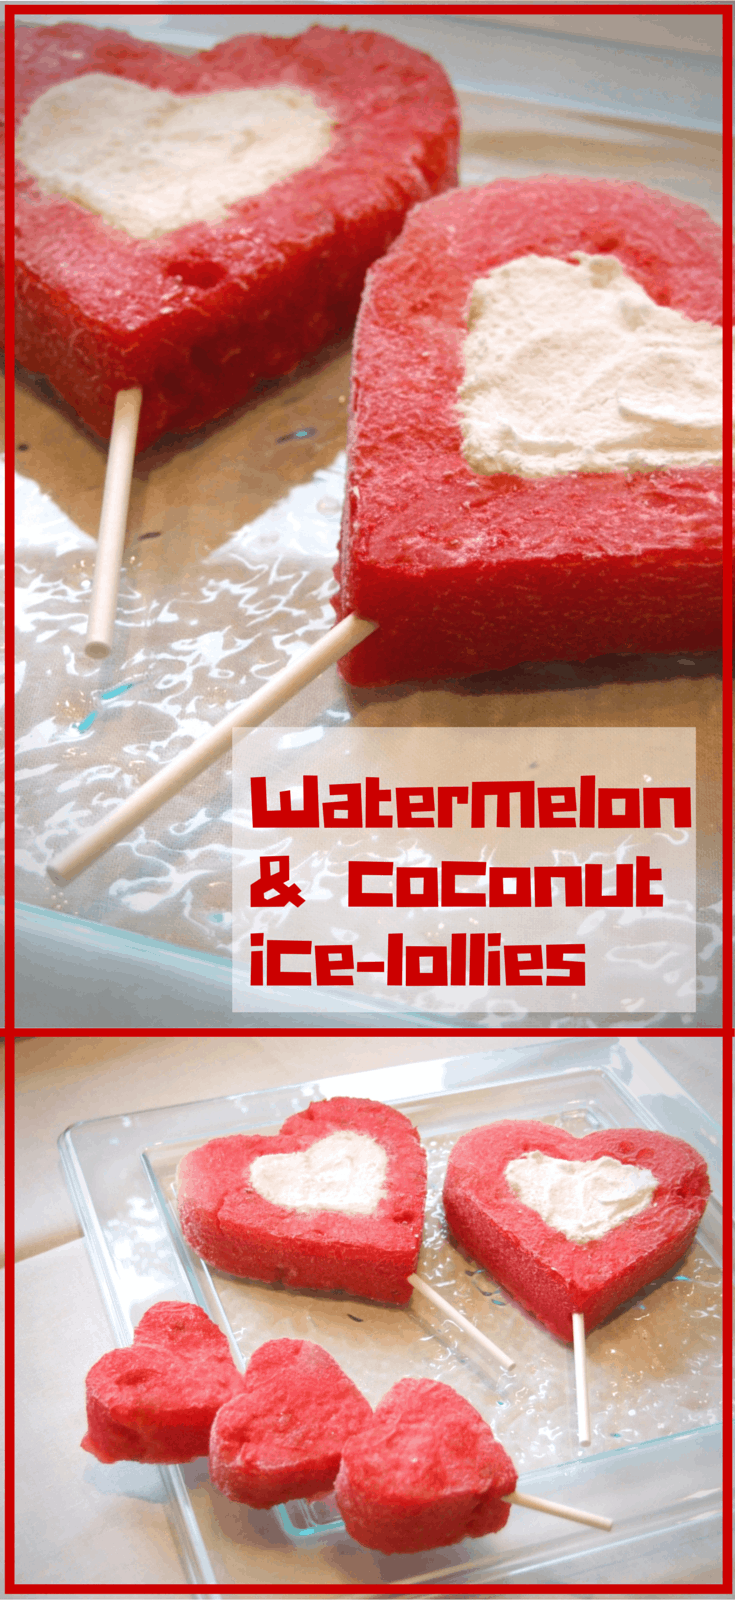 Refreshing heart-shaped watermelon ice-pops filled with creamy frozen coconut yogurt are the perfect way to celebrate Tu B'Av - the Jewish festival of LOVE!